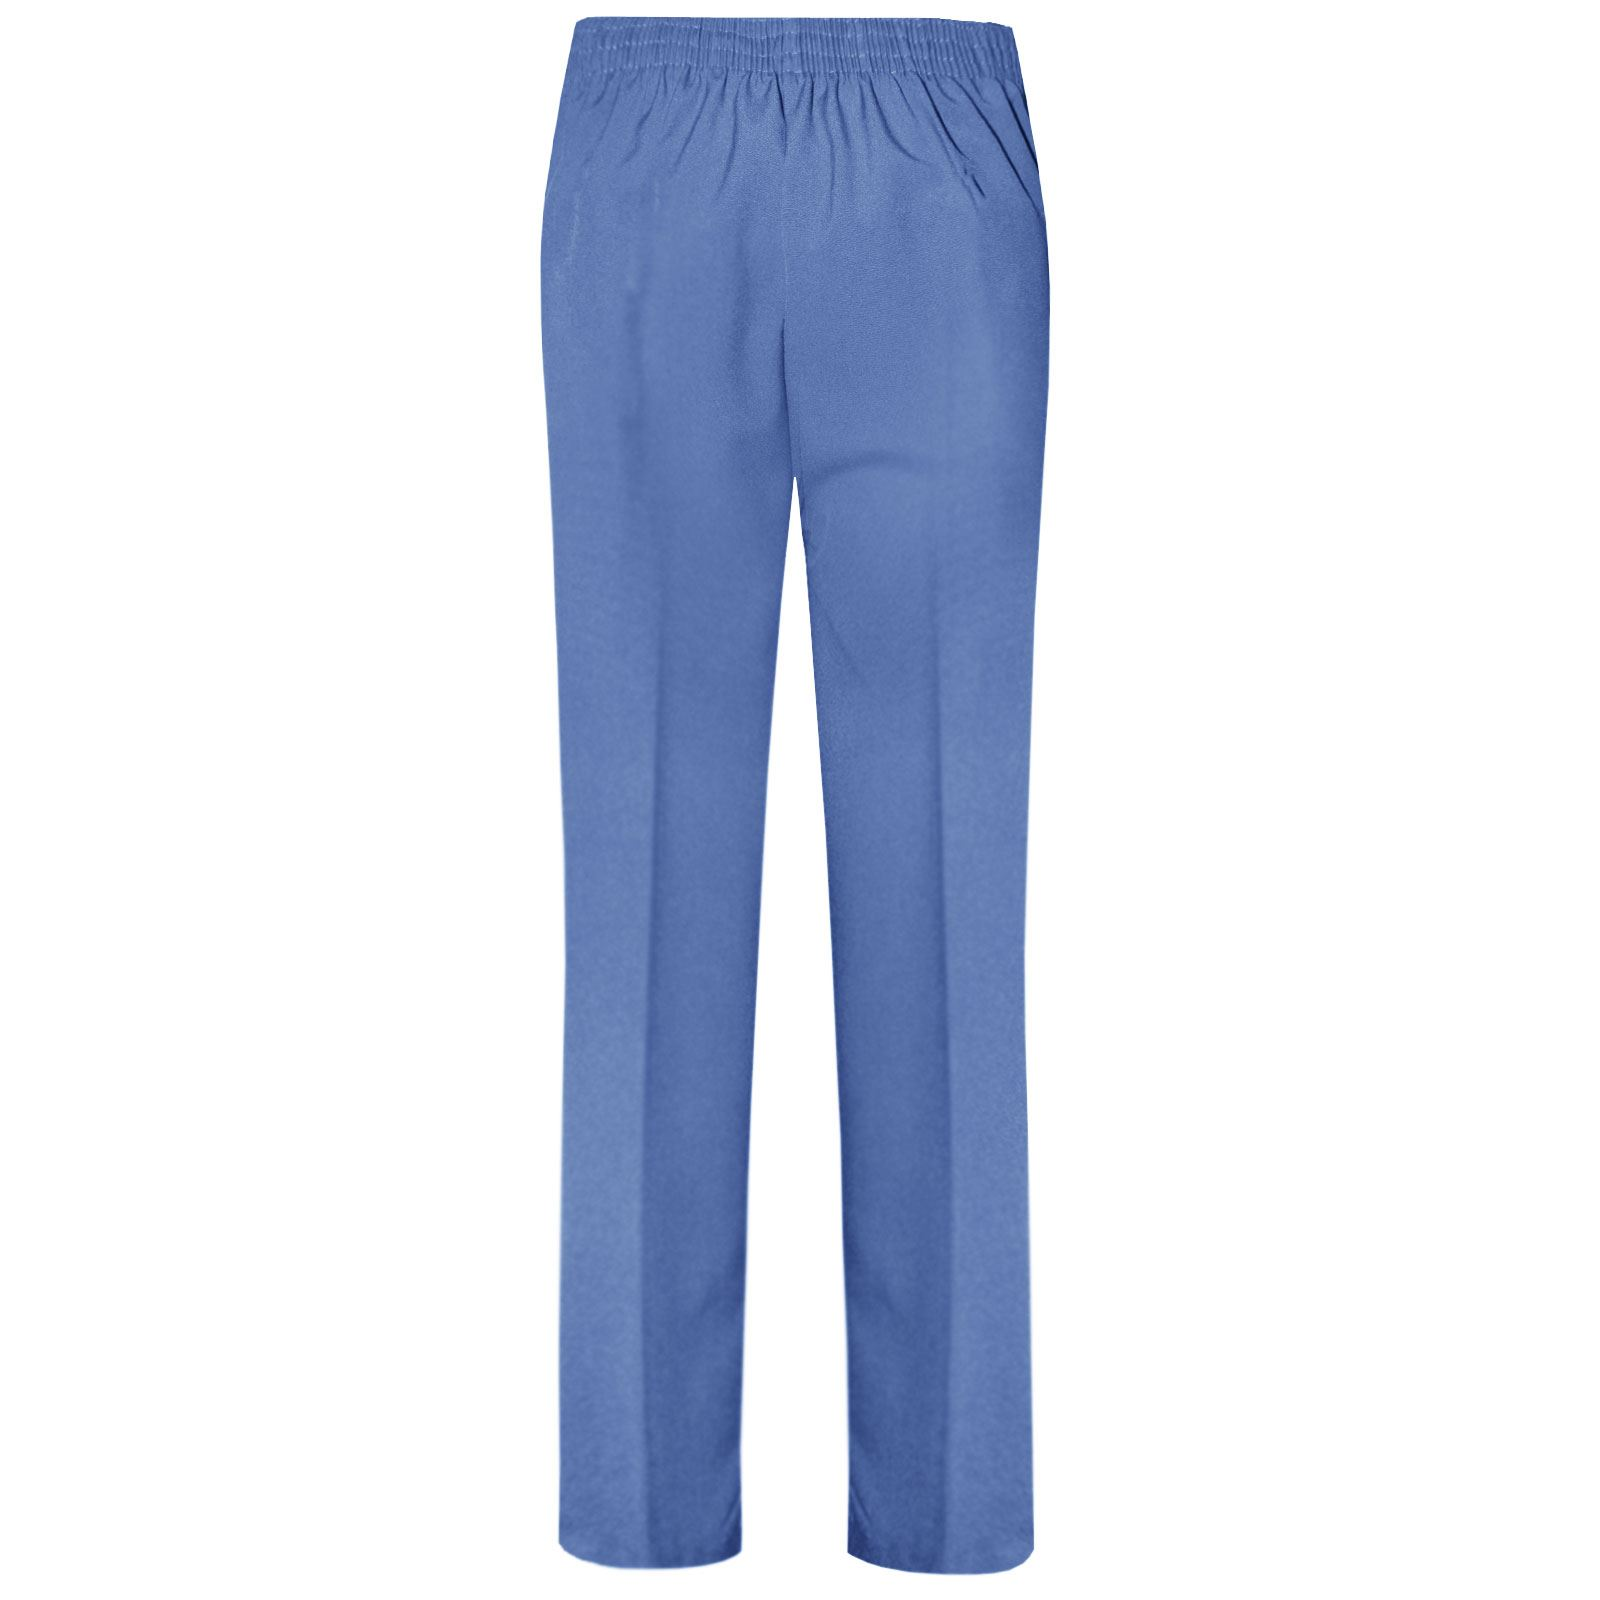 WOMEN LADIES TROUSERS GIRLS CLASSIC PANTS OFFICE SCHOOL UNIFORM ELASTIC BOTTOMS